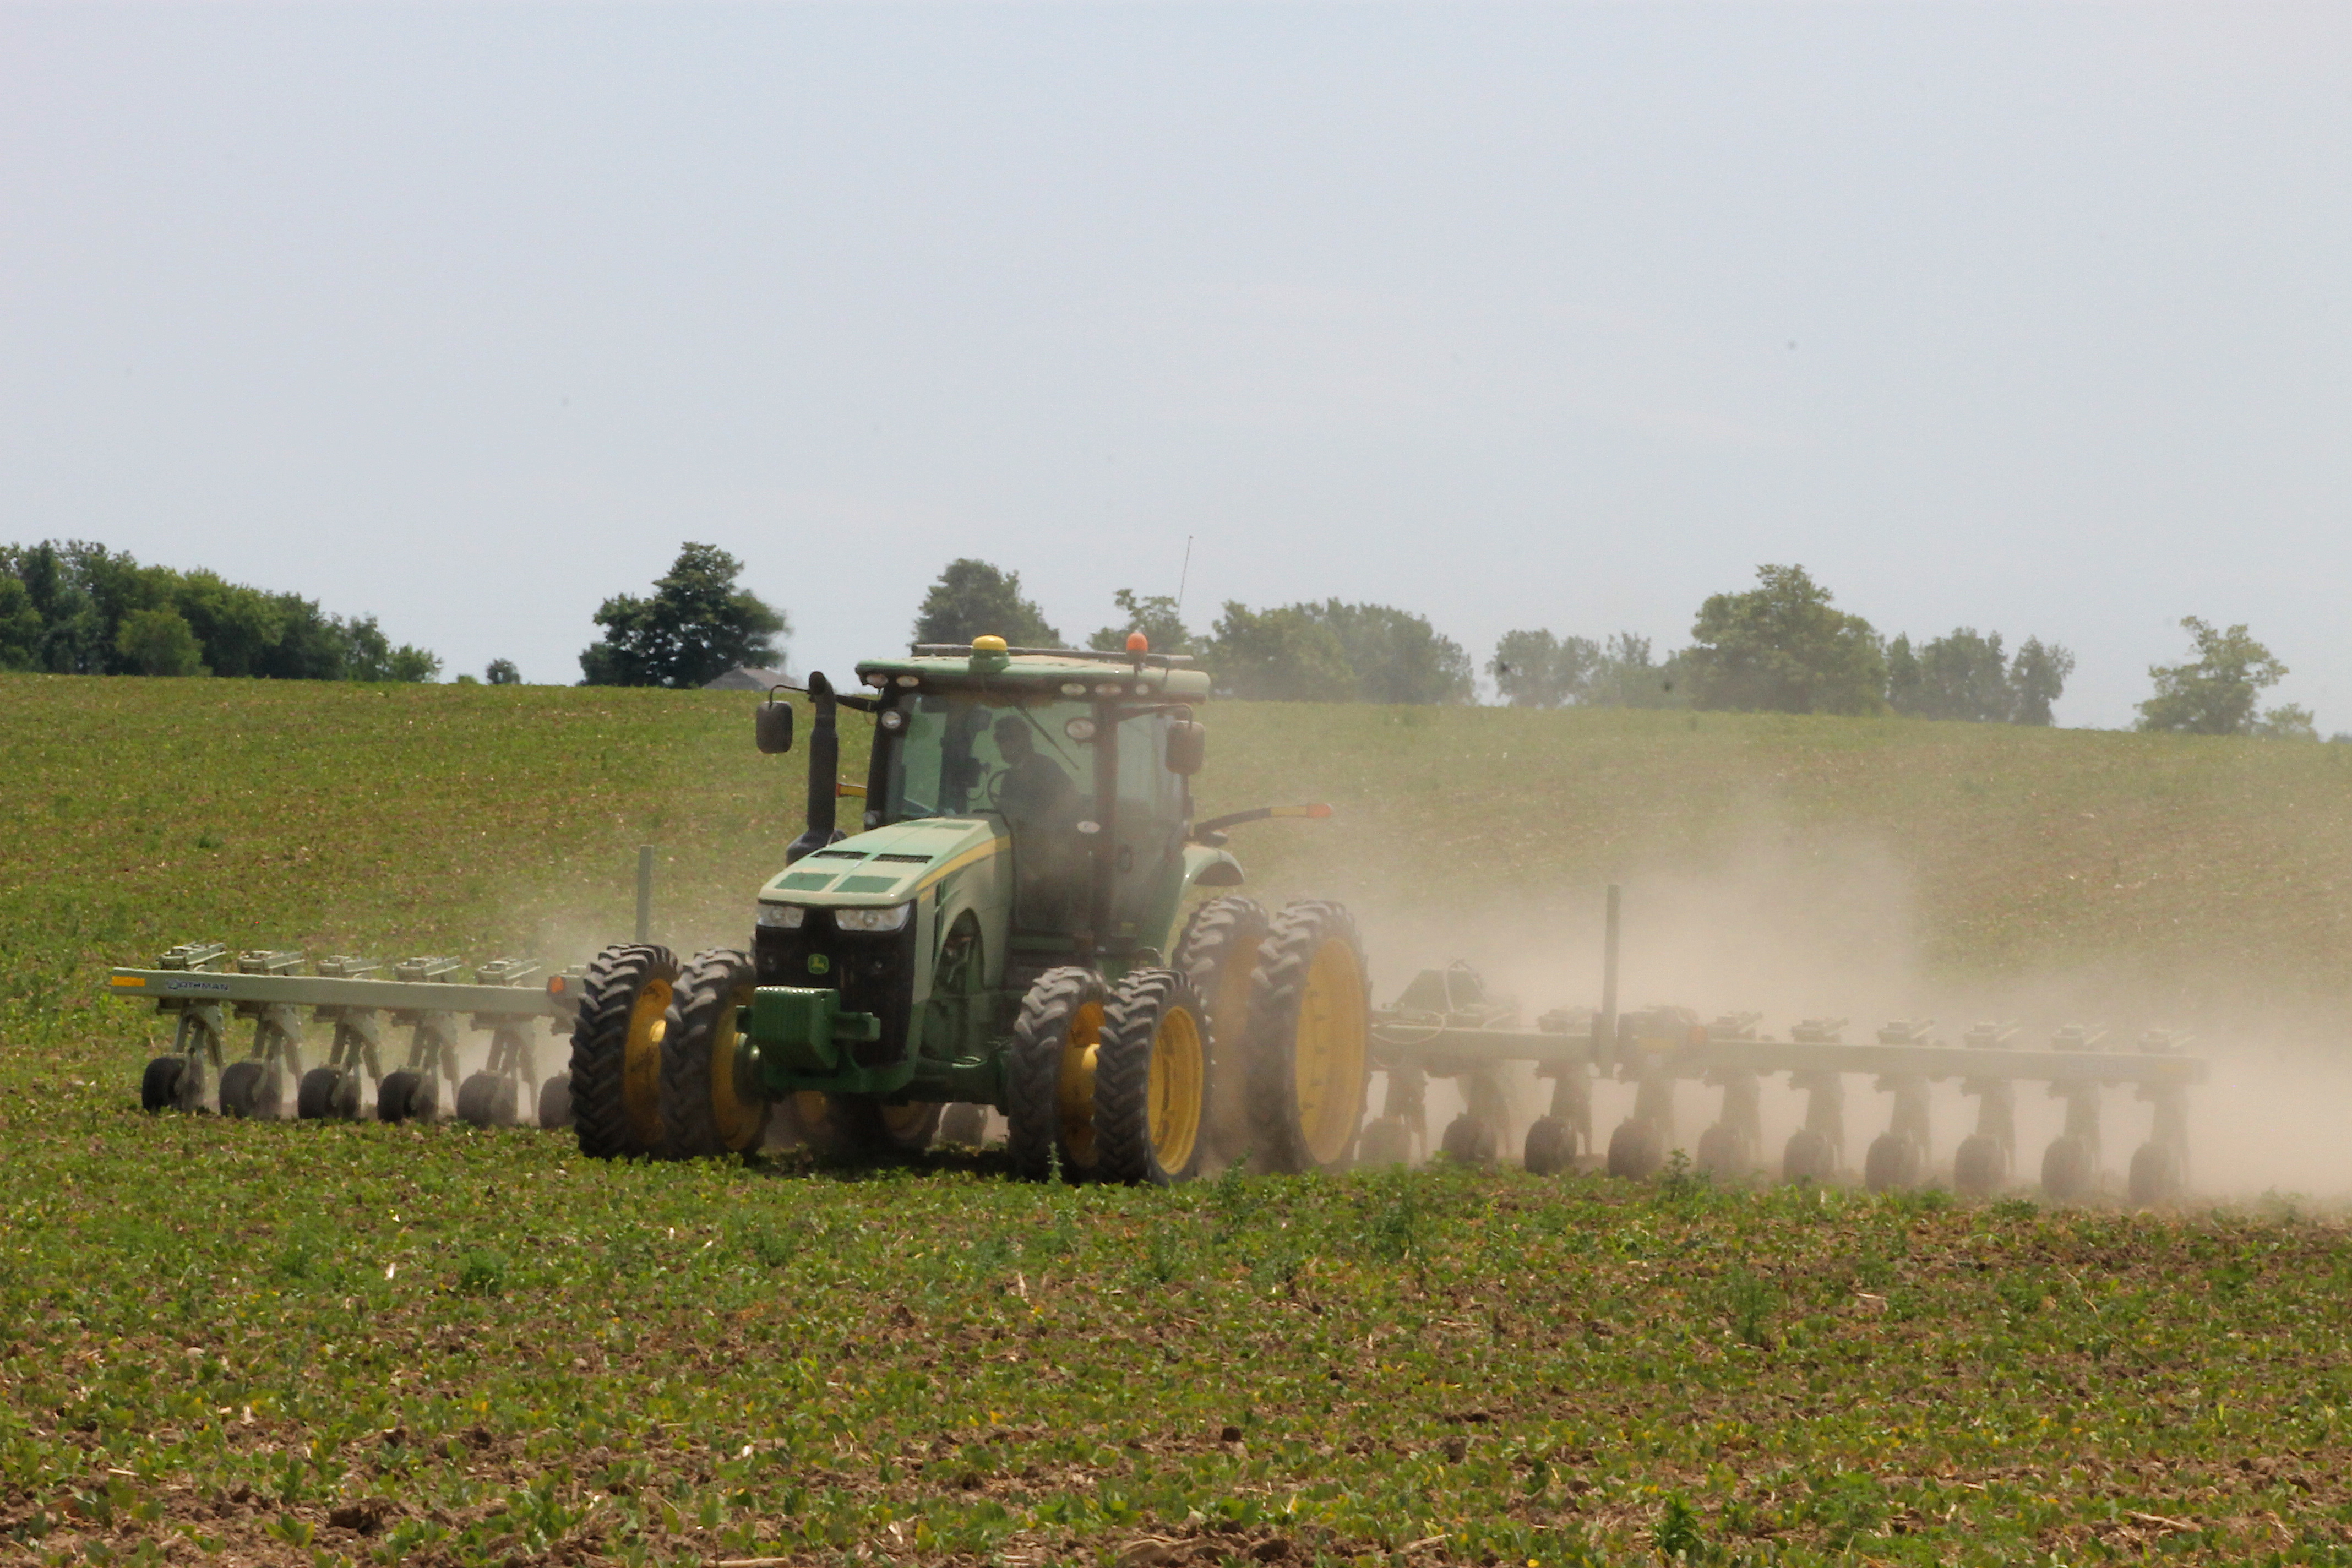 Cultivating young dry beans!